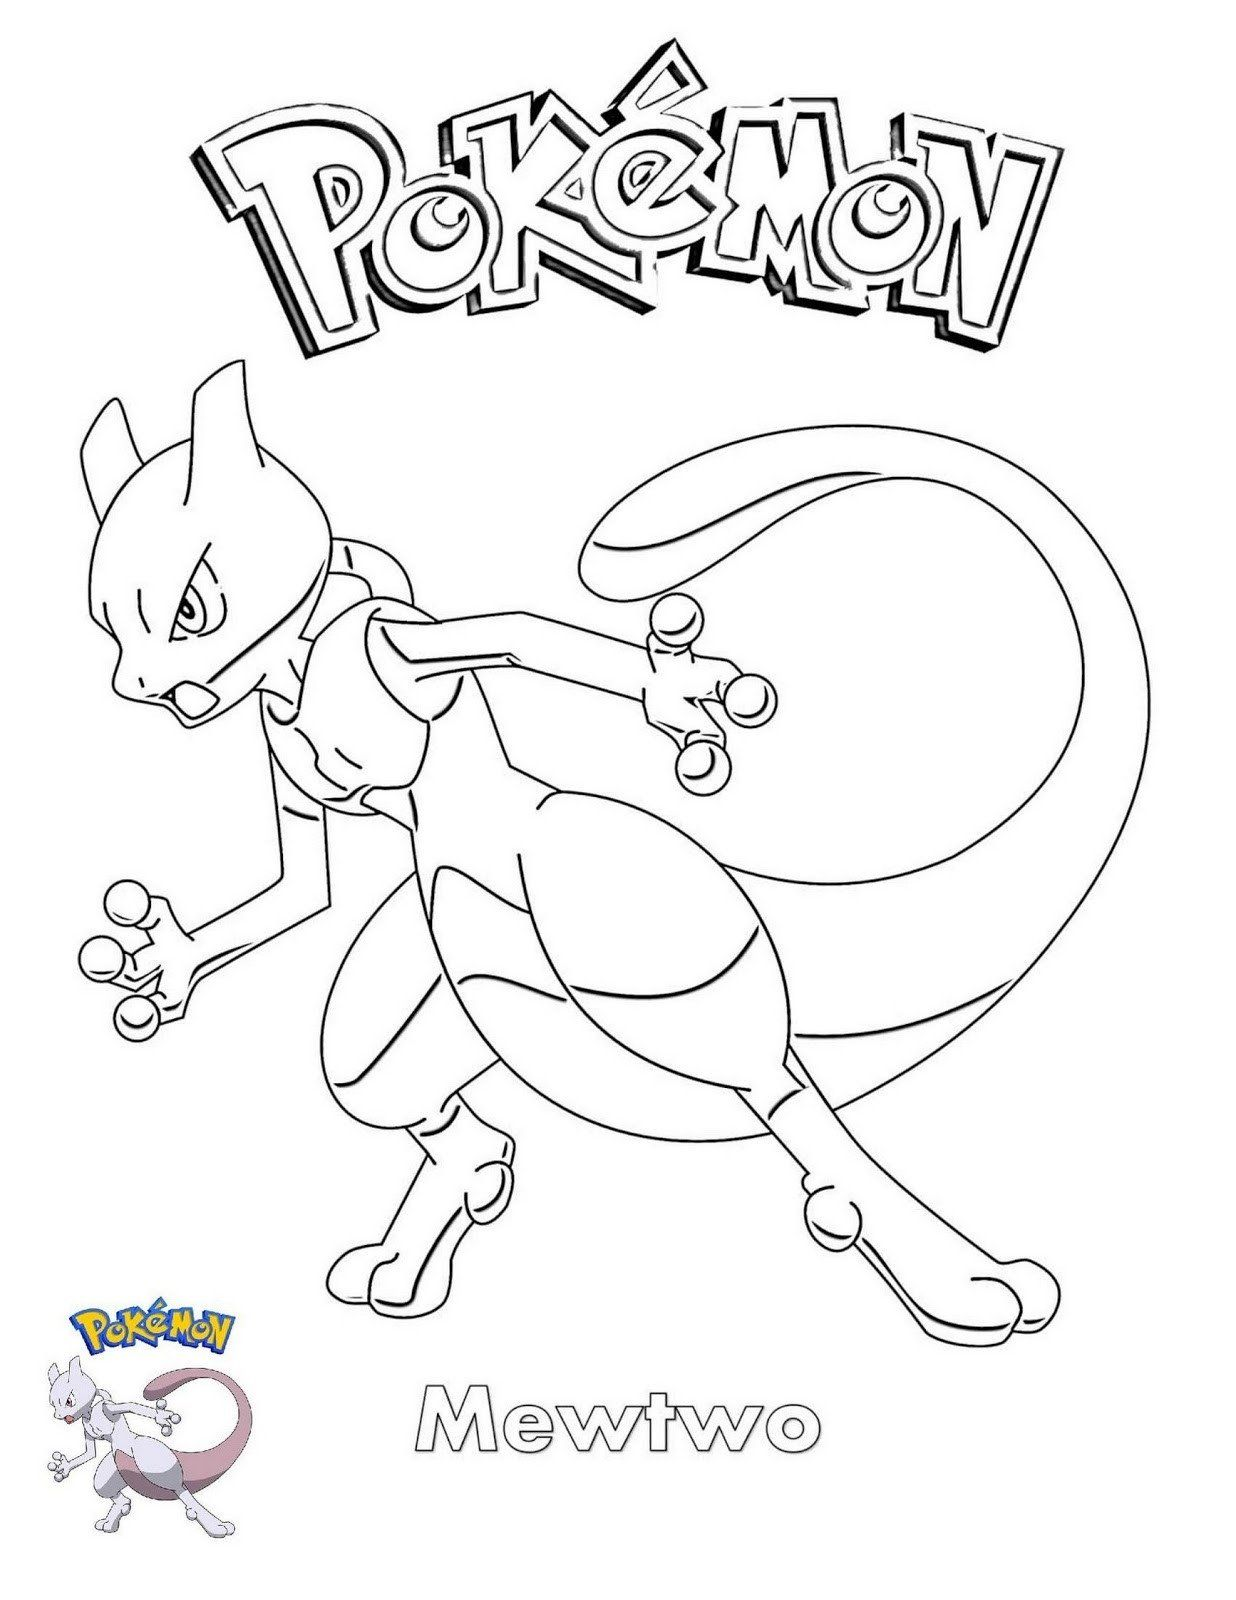 Coloring Pages For Kids Pokemon Coloring Pages Mewtwo Coloring Printable Free Pokemon Pokemon Coloring Pokemon Coloring Pages Puppy Coloring Pages